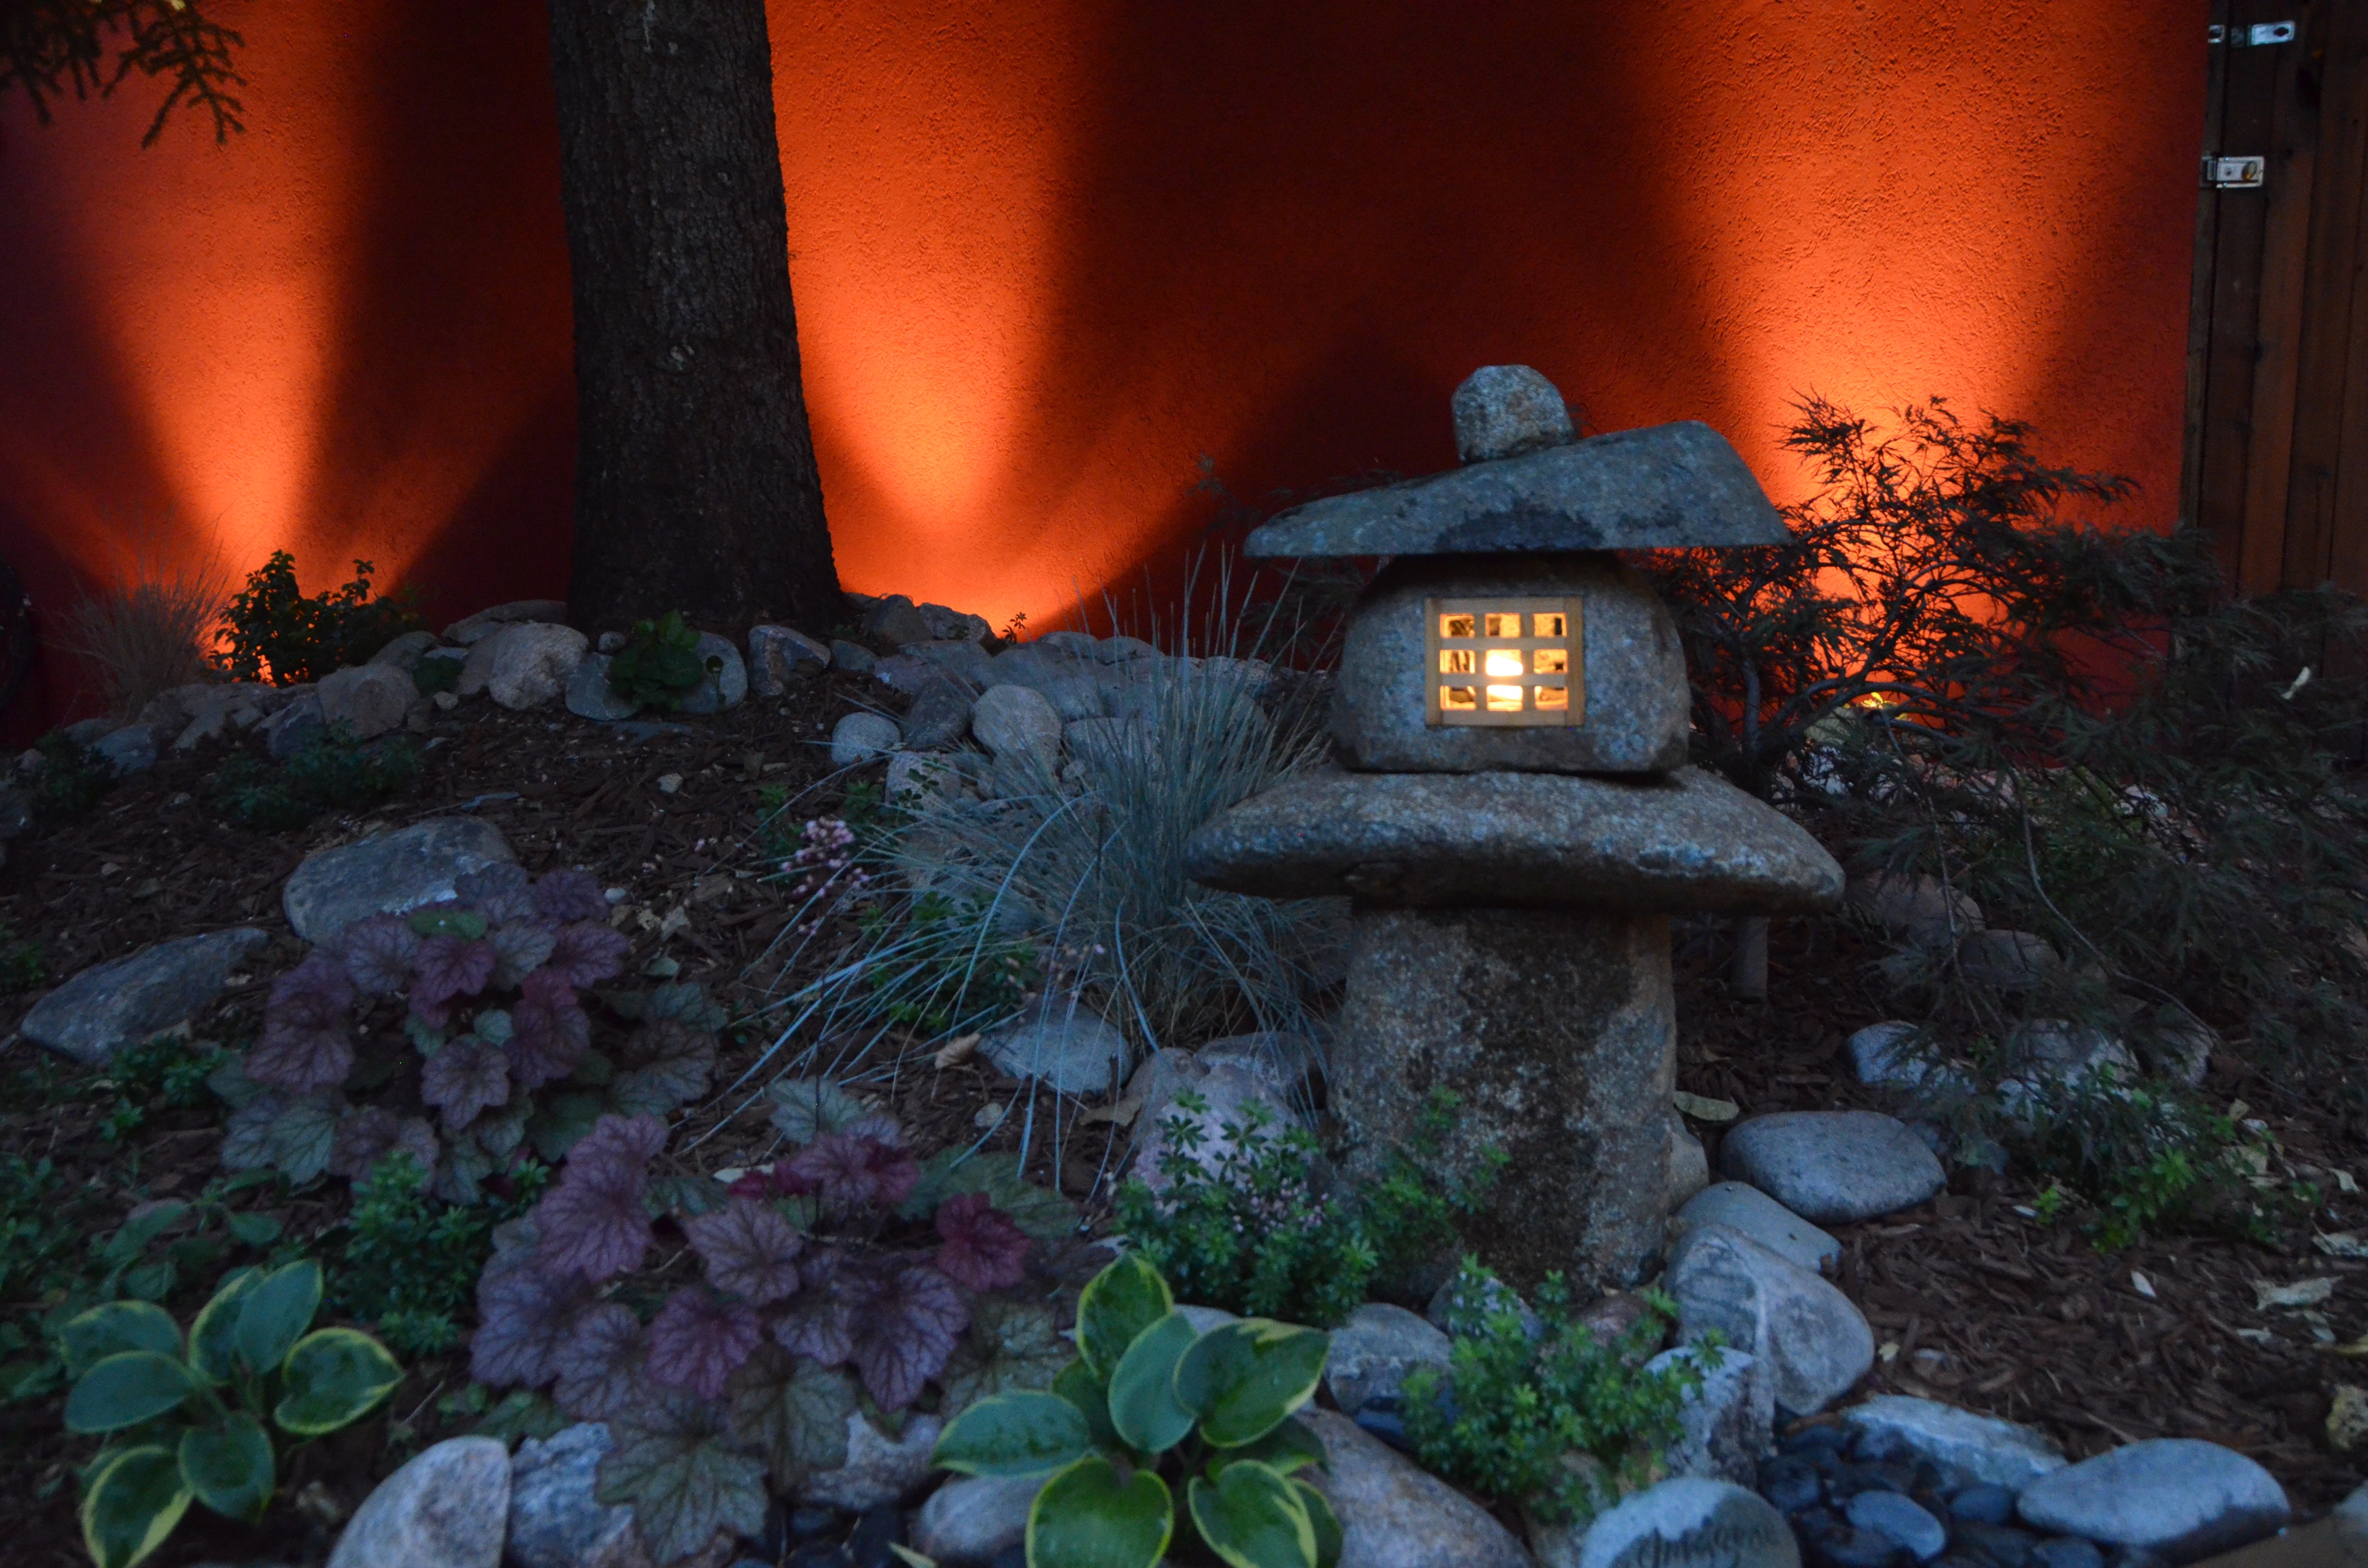 Japanese Lantern With Outdoor Lighting - Landscaping In Denver intended for Outdoor Lighting Japanese Lanterns (Image 13 of 20)